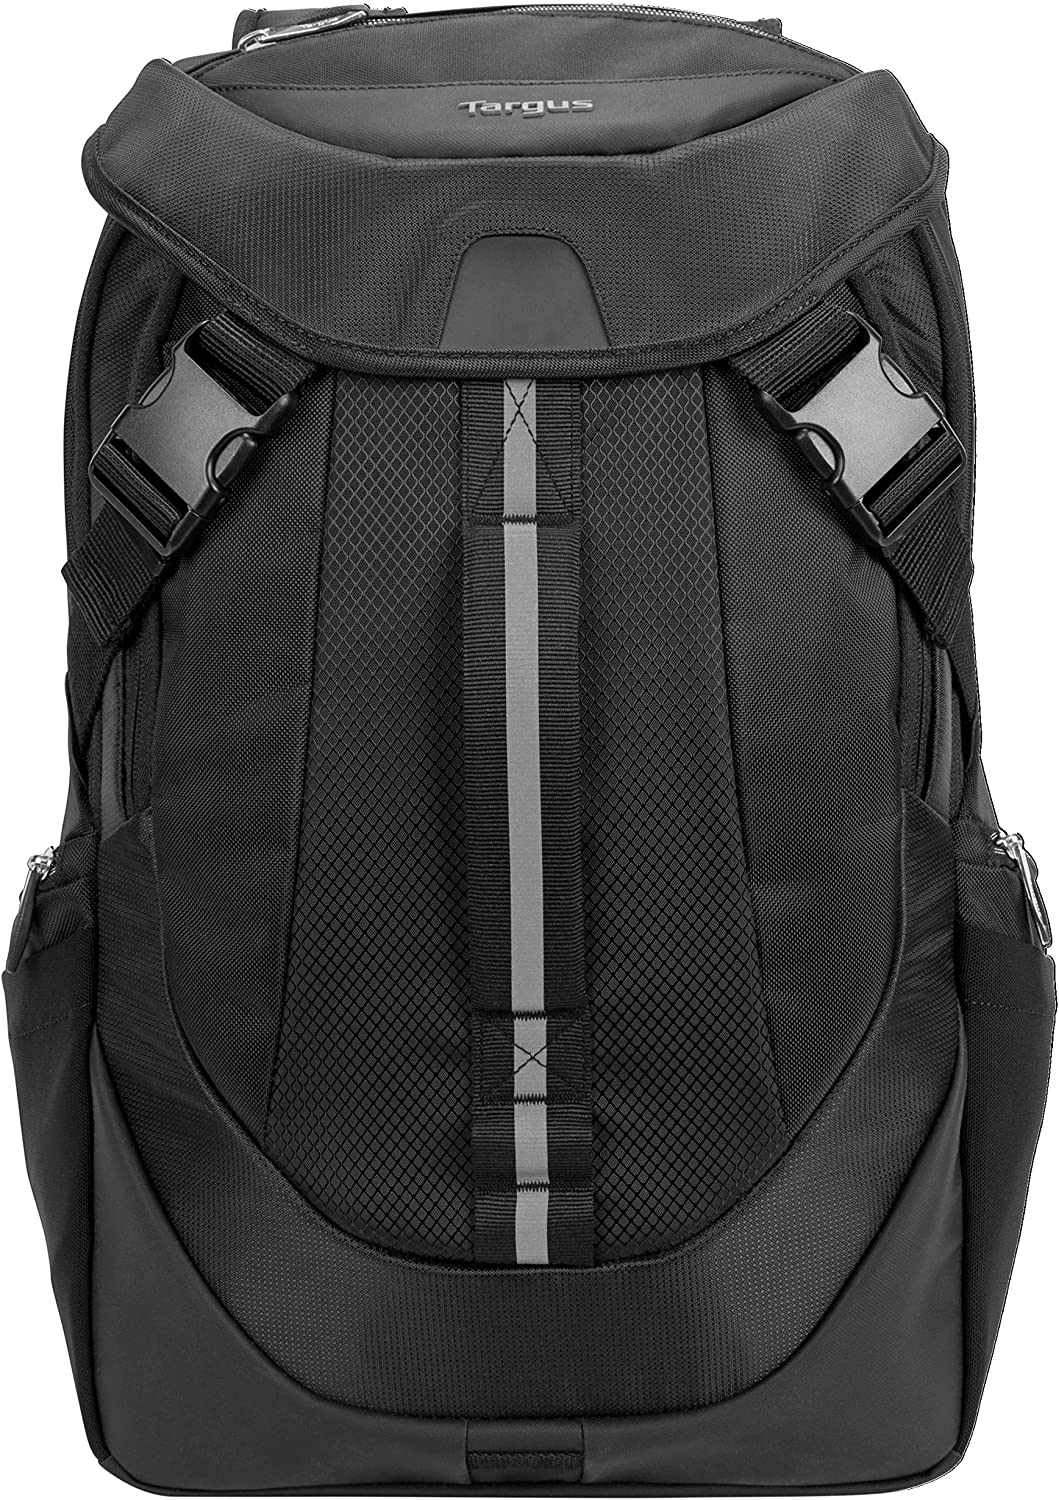 Targus Voyager II Travel and Commuter Business Backpack with Hideaway Rain Cover, Sternum & Waist Buckled Straps, Trolley Strap, Padded Shock-Absorbing Protection for 17.3-Inch Laptop, Black (TSB953GL)